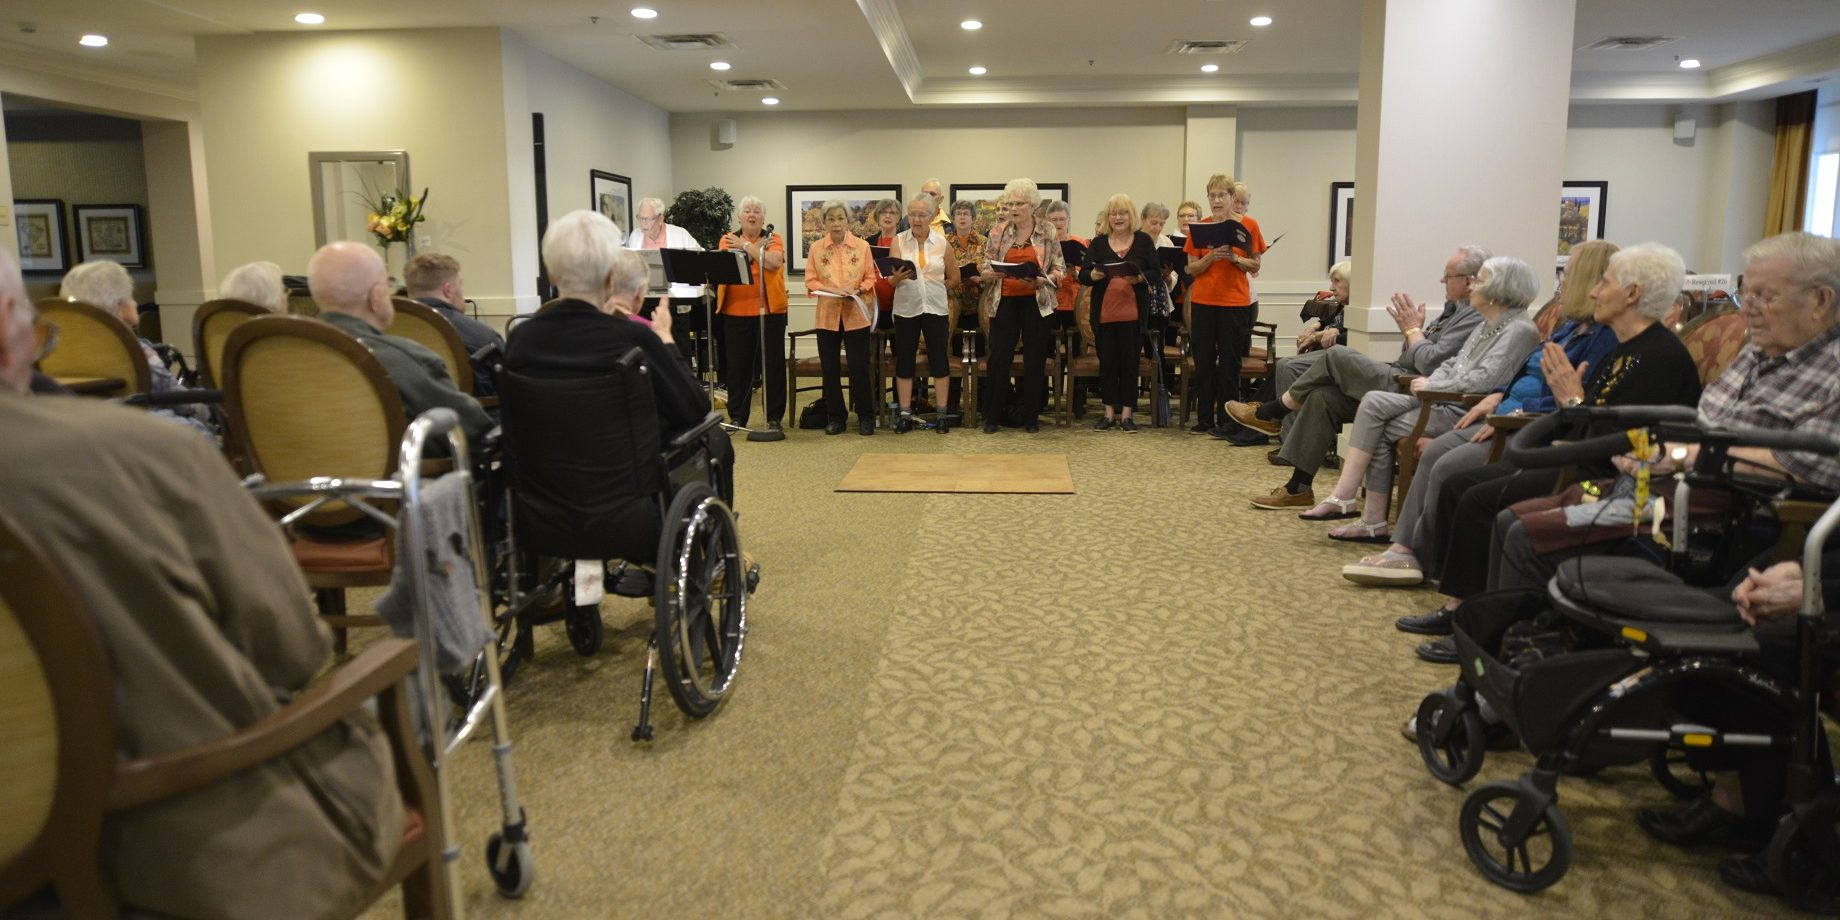 Residents of College Park II, a retirement residence, are entertained by a local choir. A landmark 2013 study by the Montreal Neurological Institute showed clearly the benefits music has on the brain. Photo by Don Hall